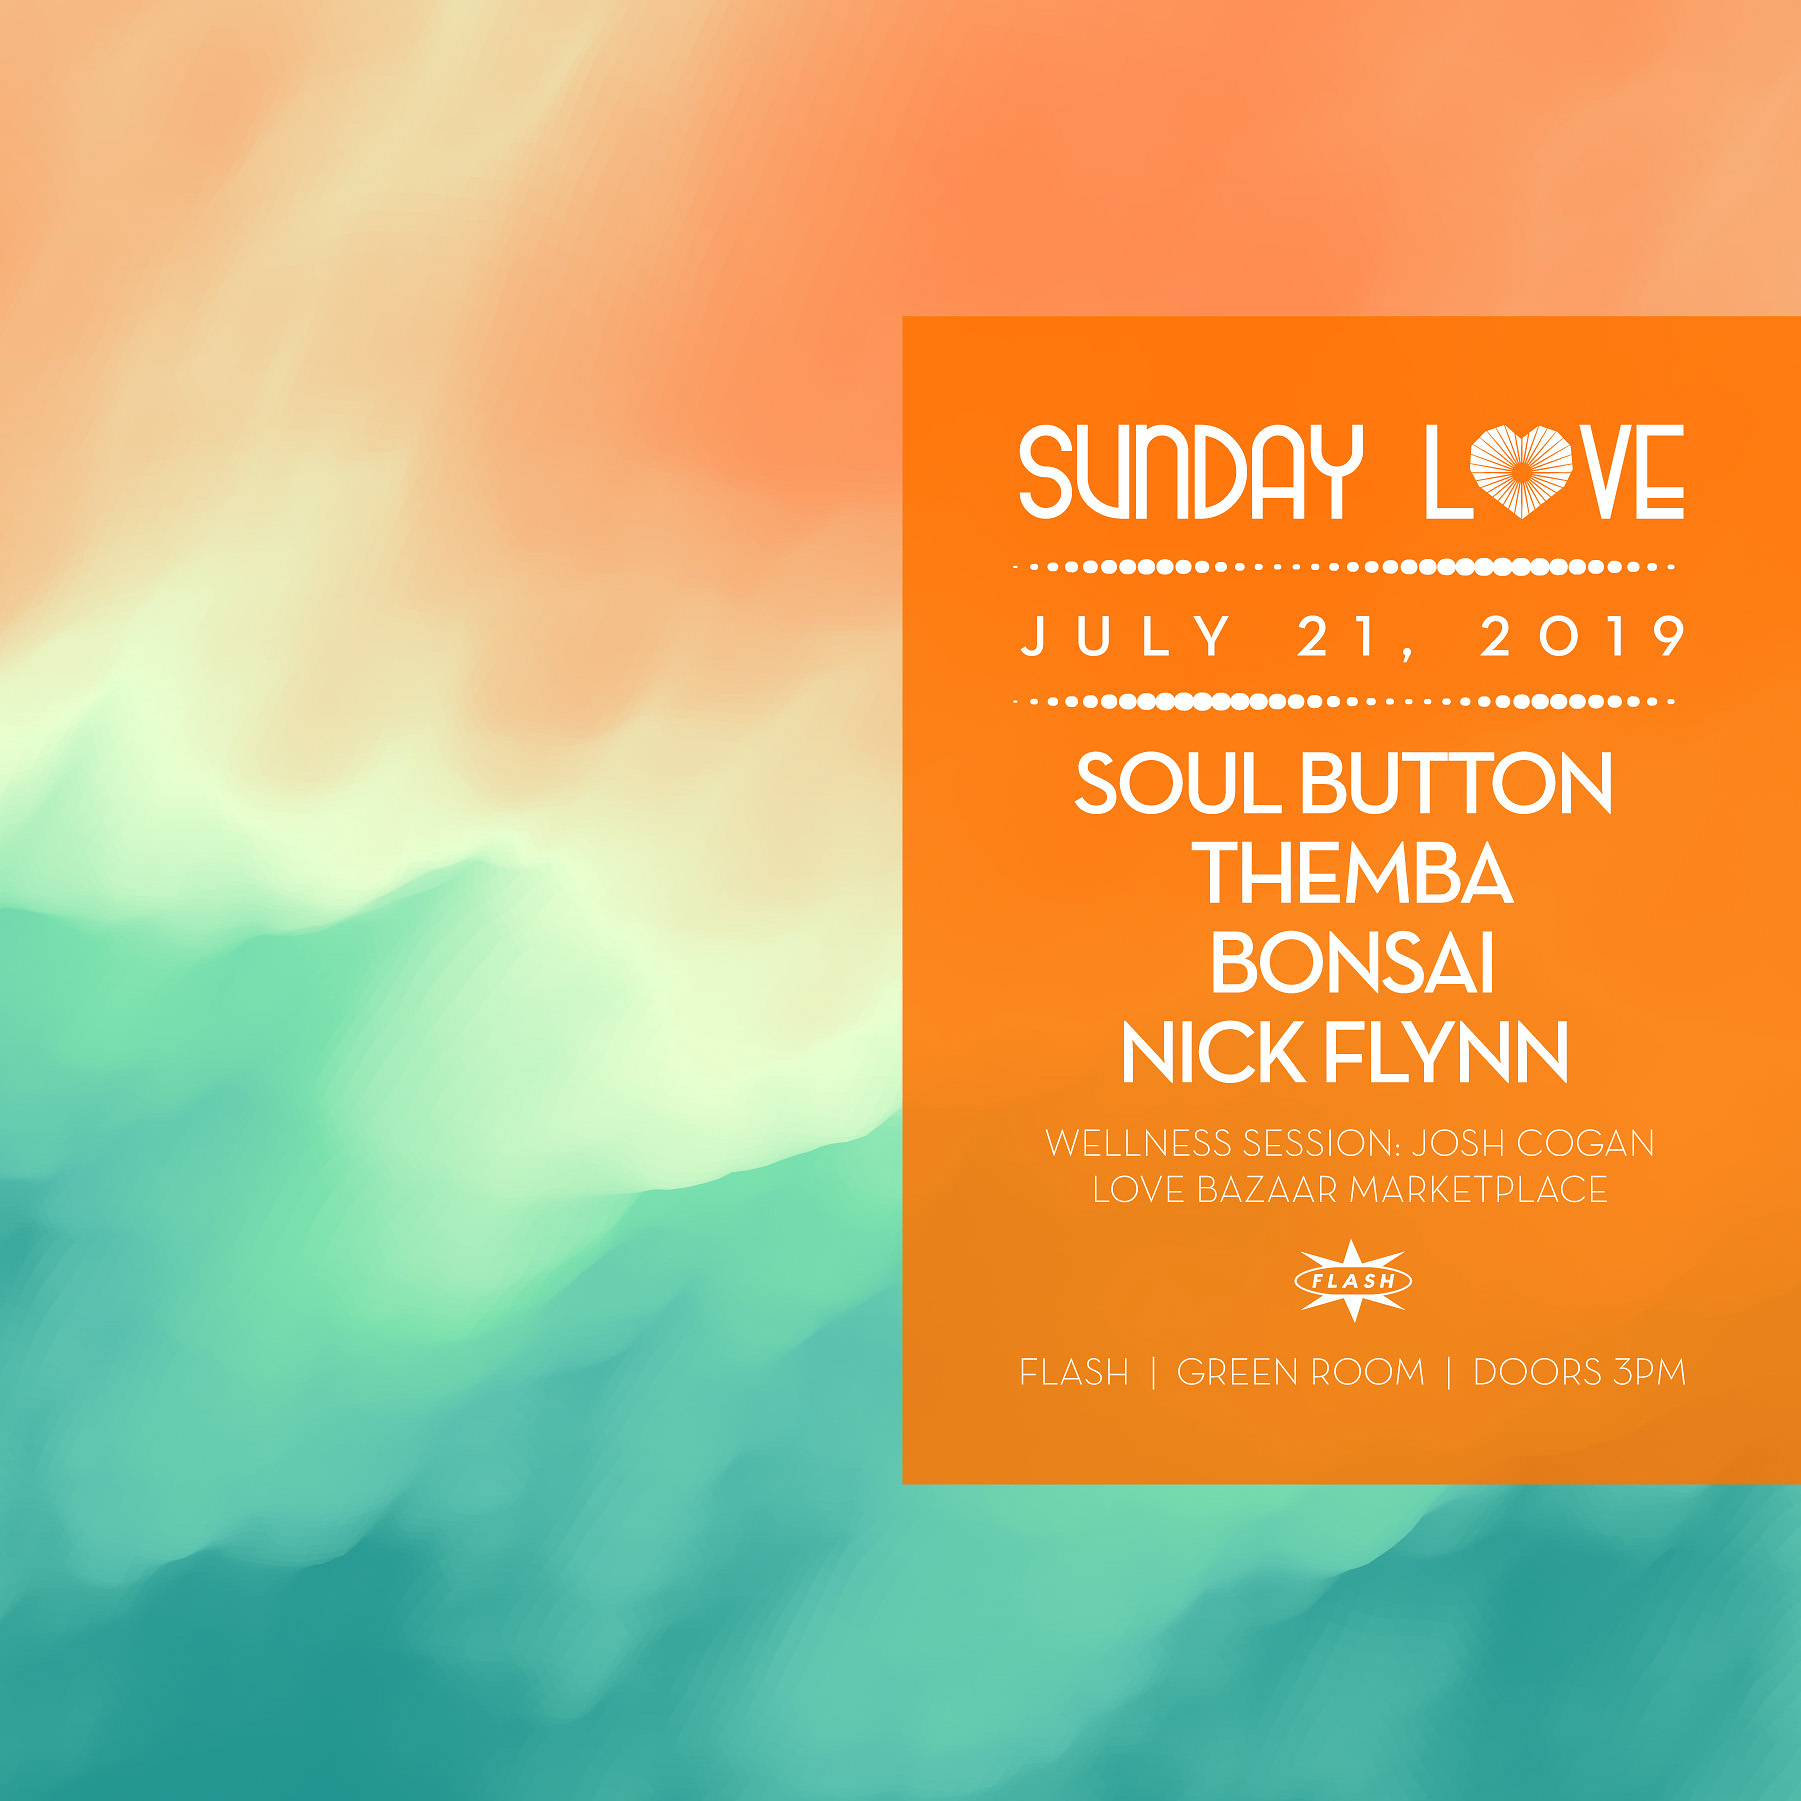 Sunday Love: Soul Button - Themba - Bonsai - Nick Flynn event thumbnail